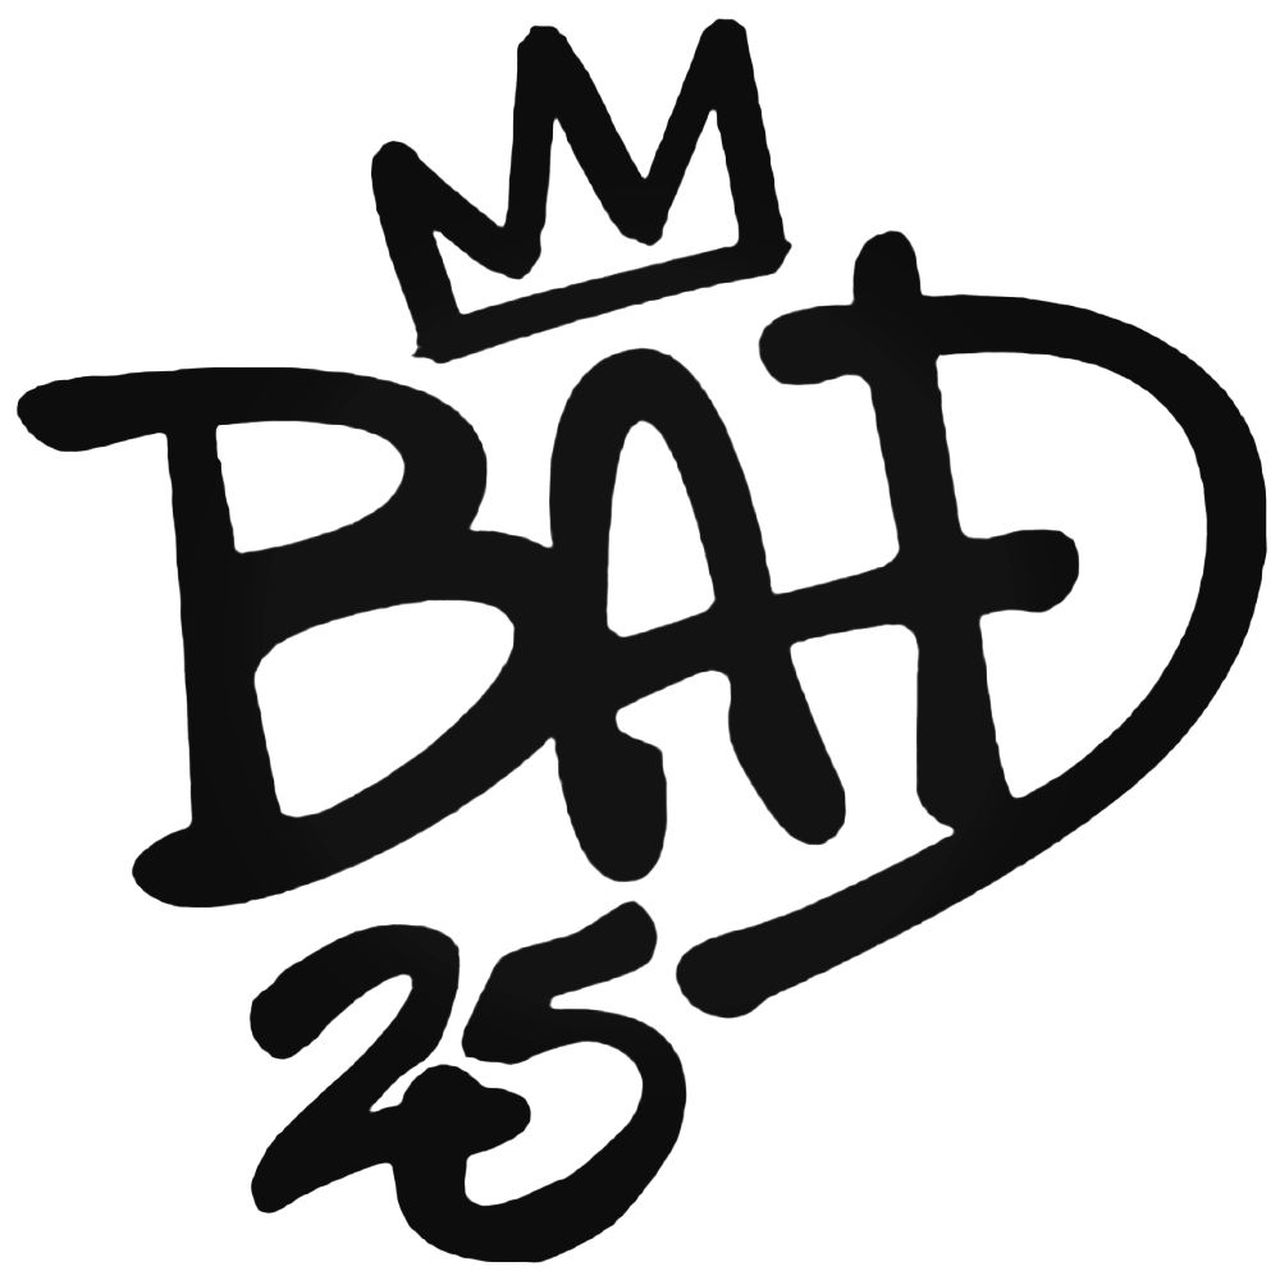 S Michael Jackson Bad Th Band Decal Sticker.